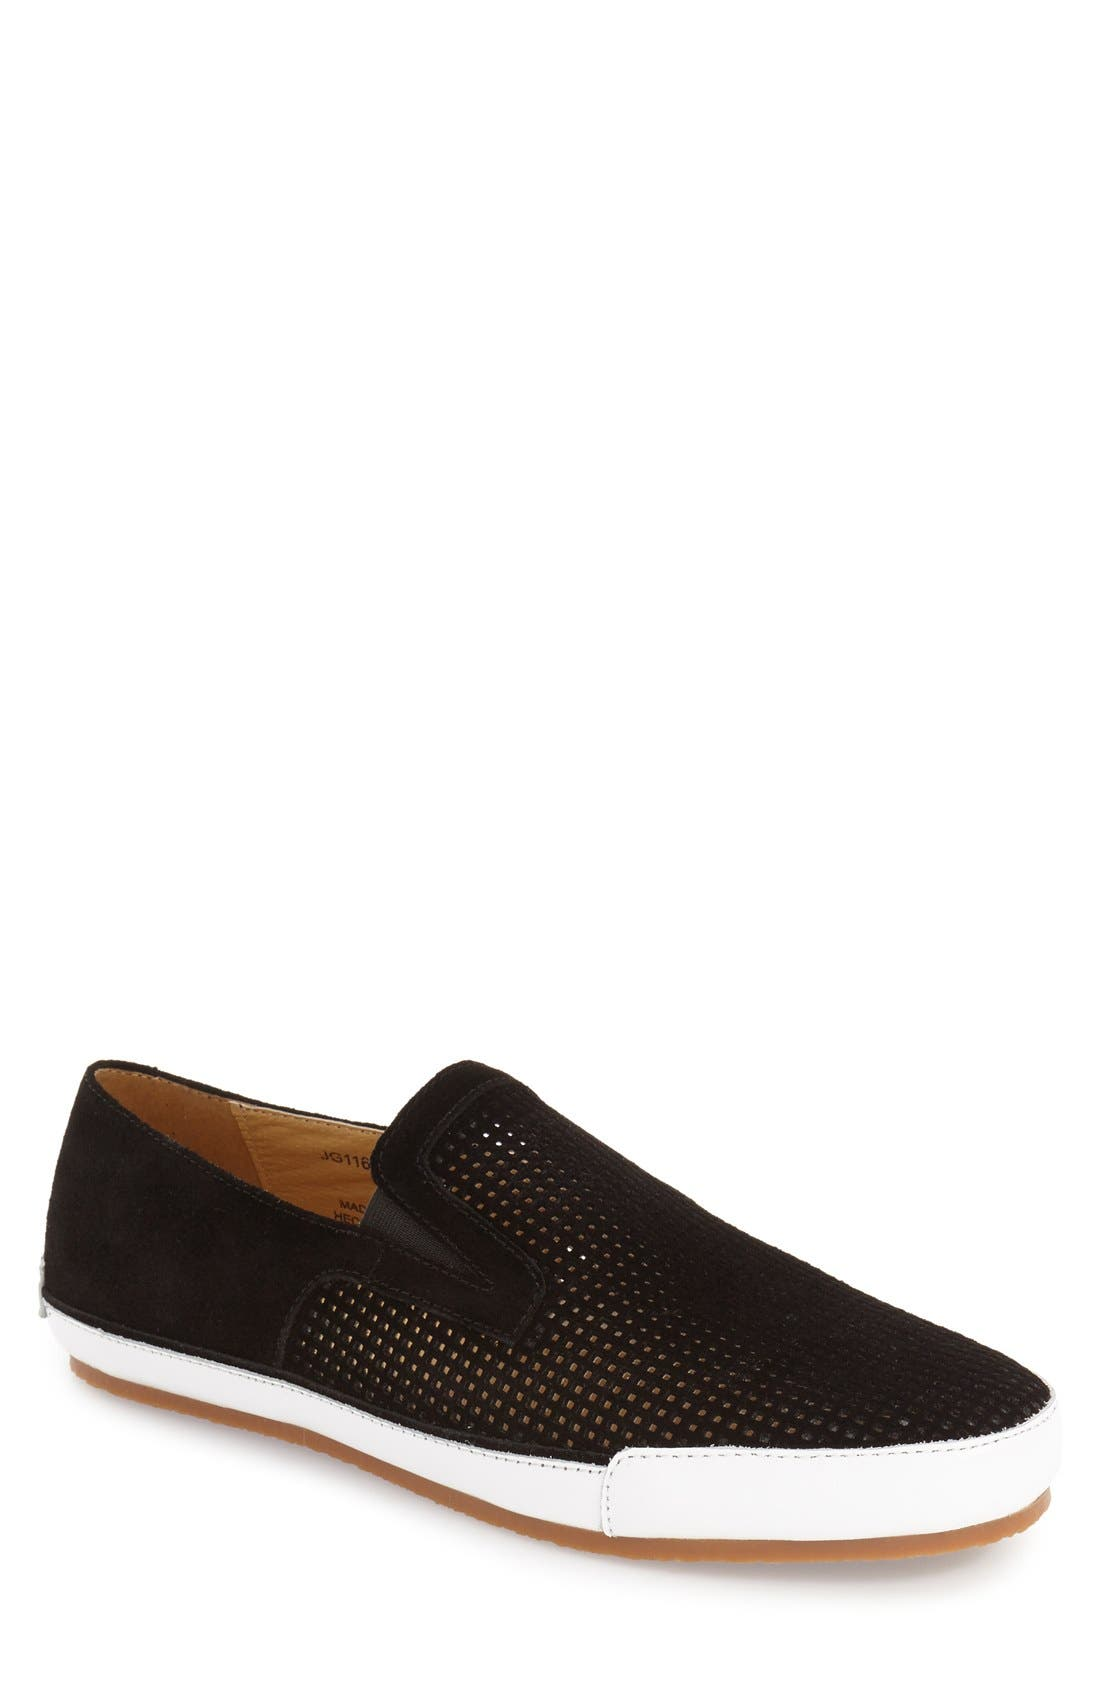 'Rodeo' Slip-On, Main, color, 001